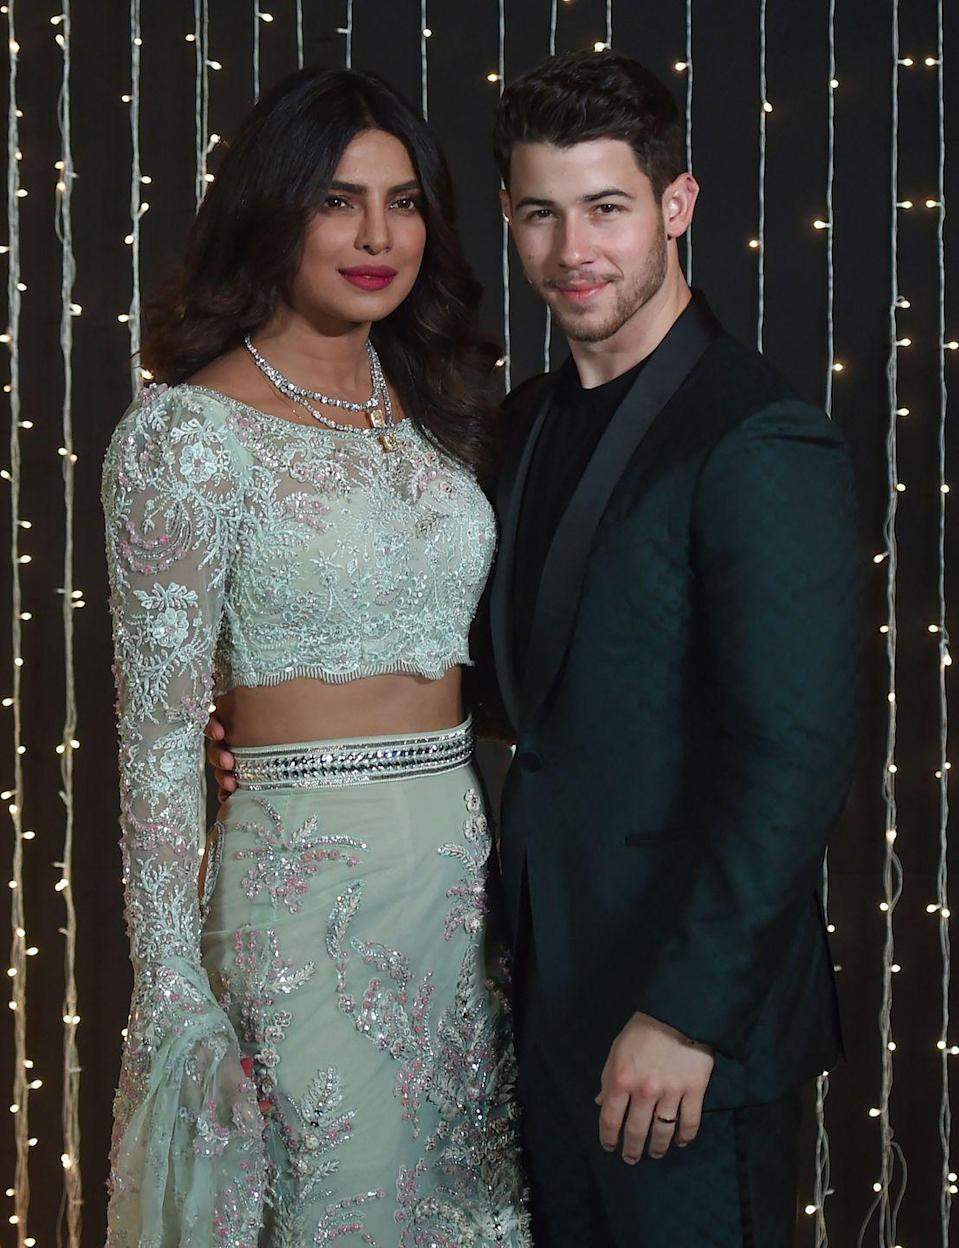 <p>The couple attend a reception in Mumbai, India a few weeks after they exchange vows.</p>